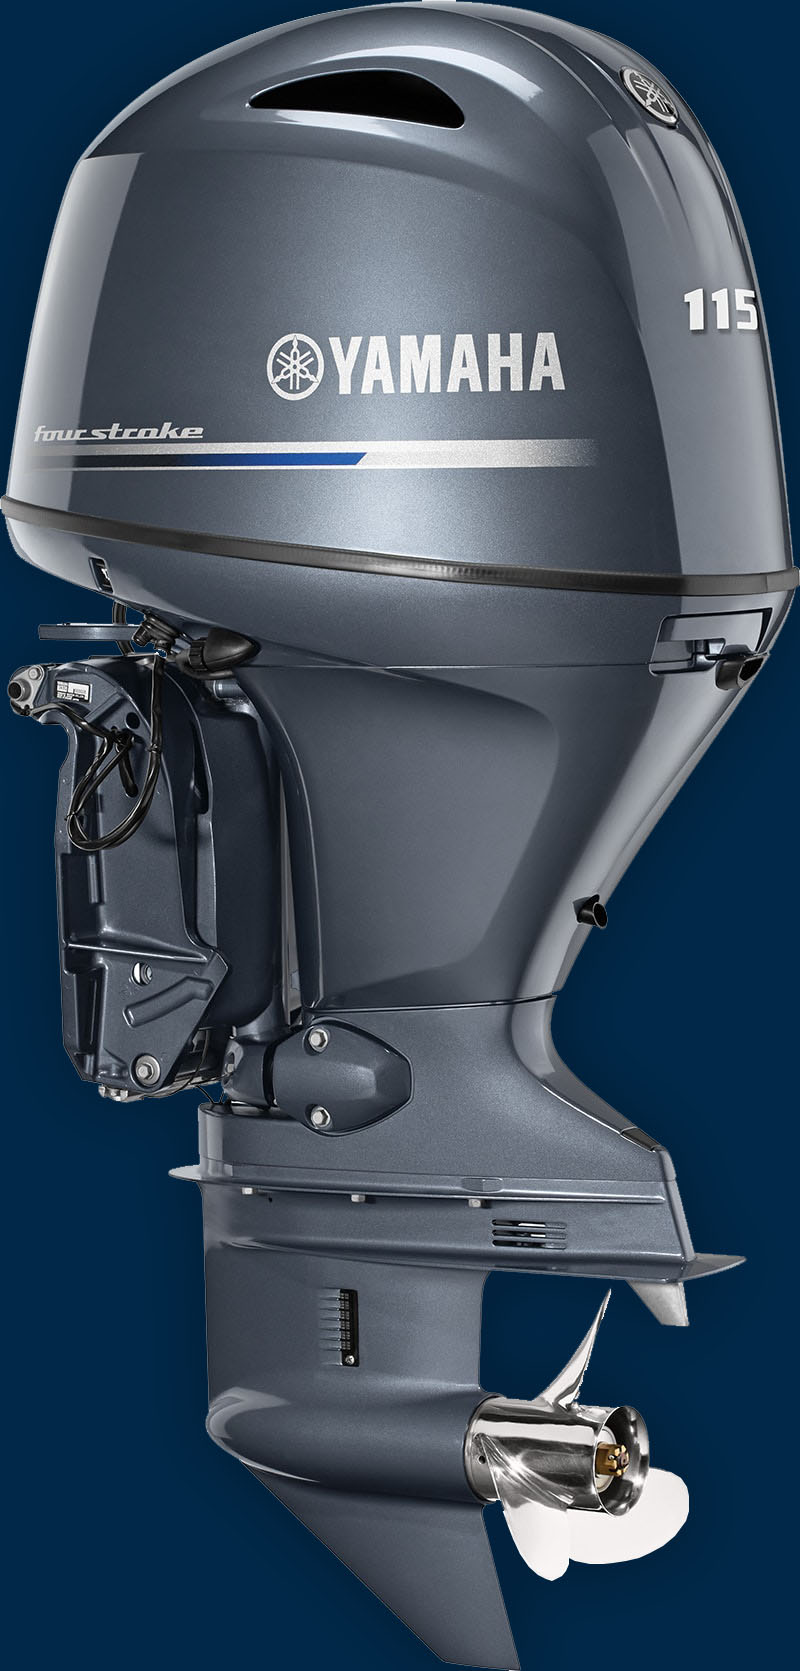 F90 F75 Specialty Page Yamaha Outboards Wiring Diagram F115 01